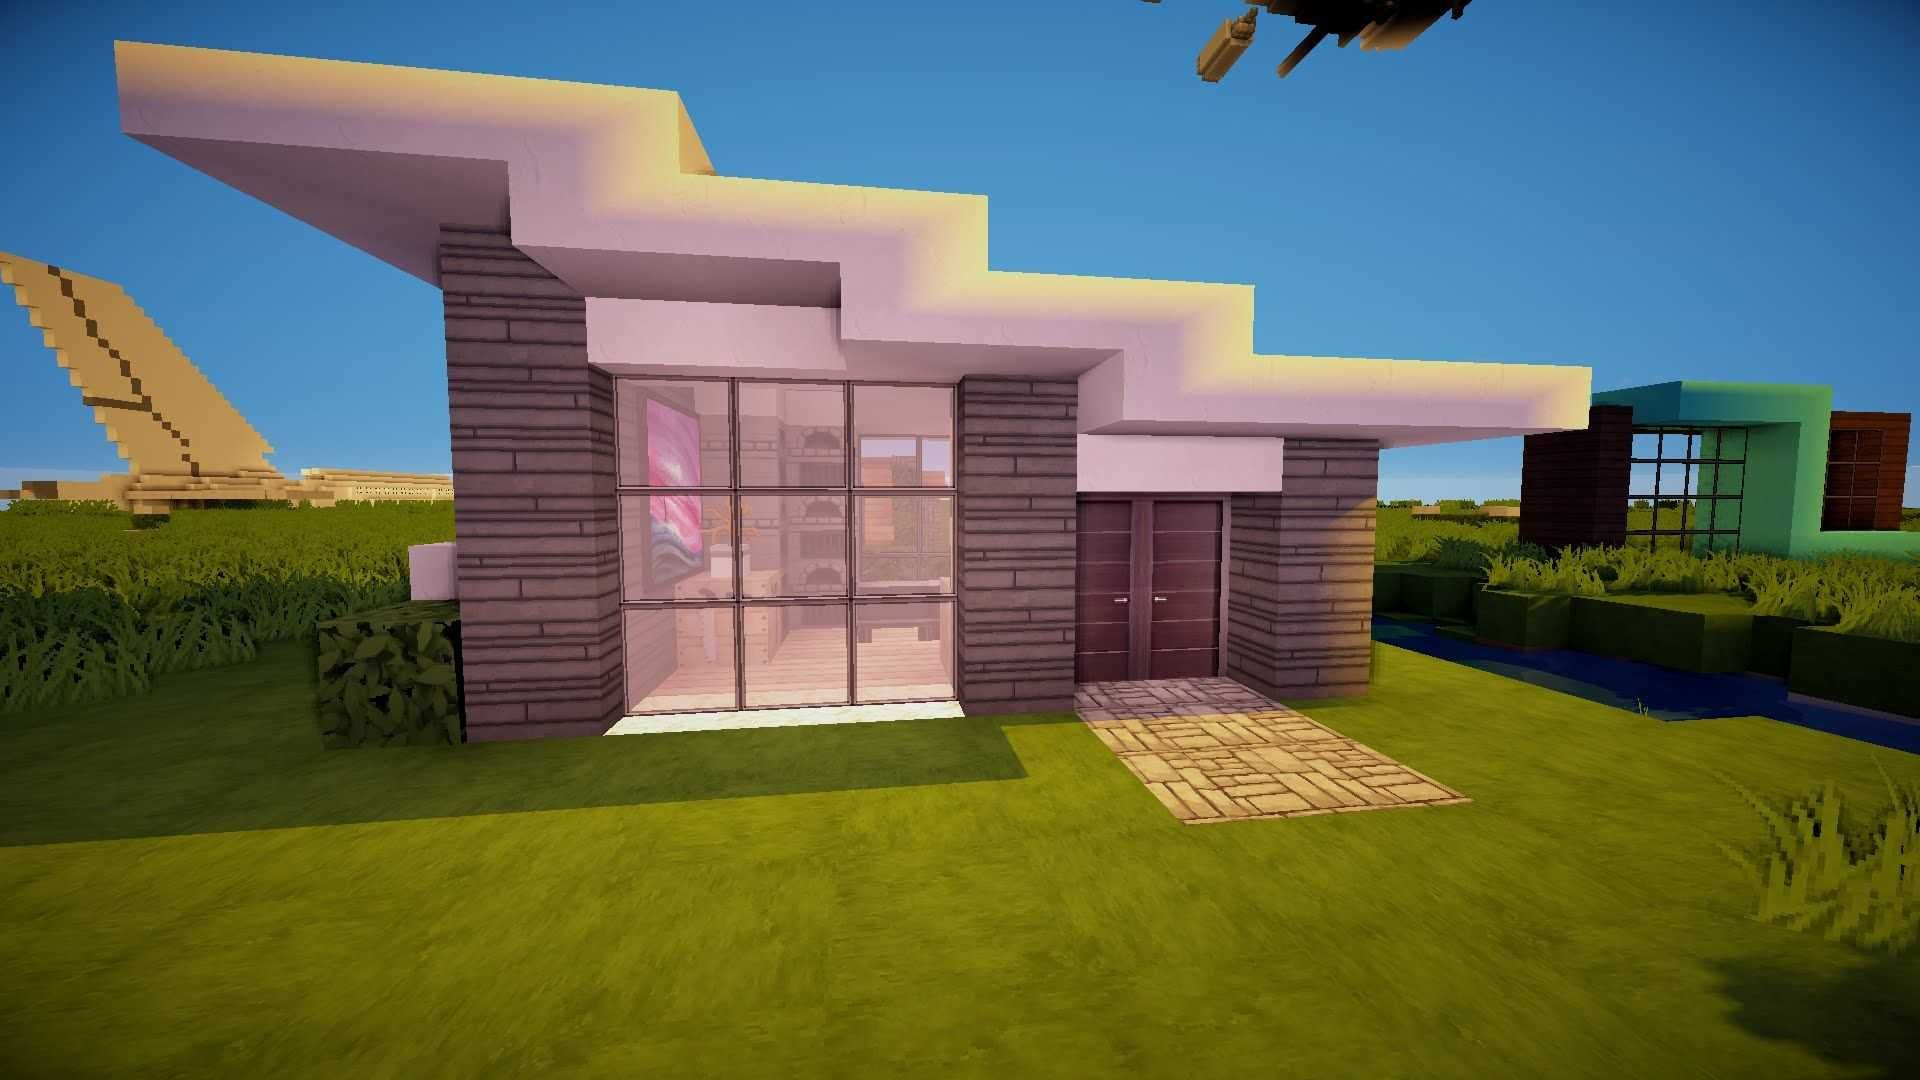 Minecraft ideas easy to build unique awesome simple house design graphics also home decor rh pinterest